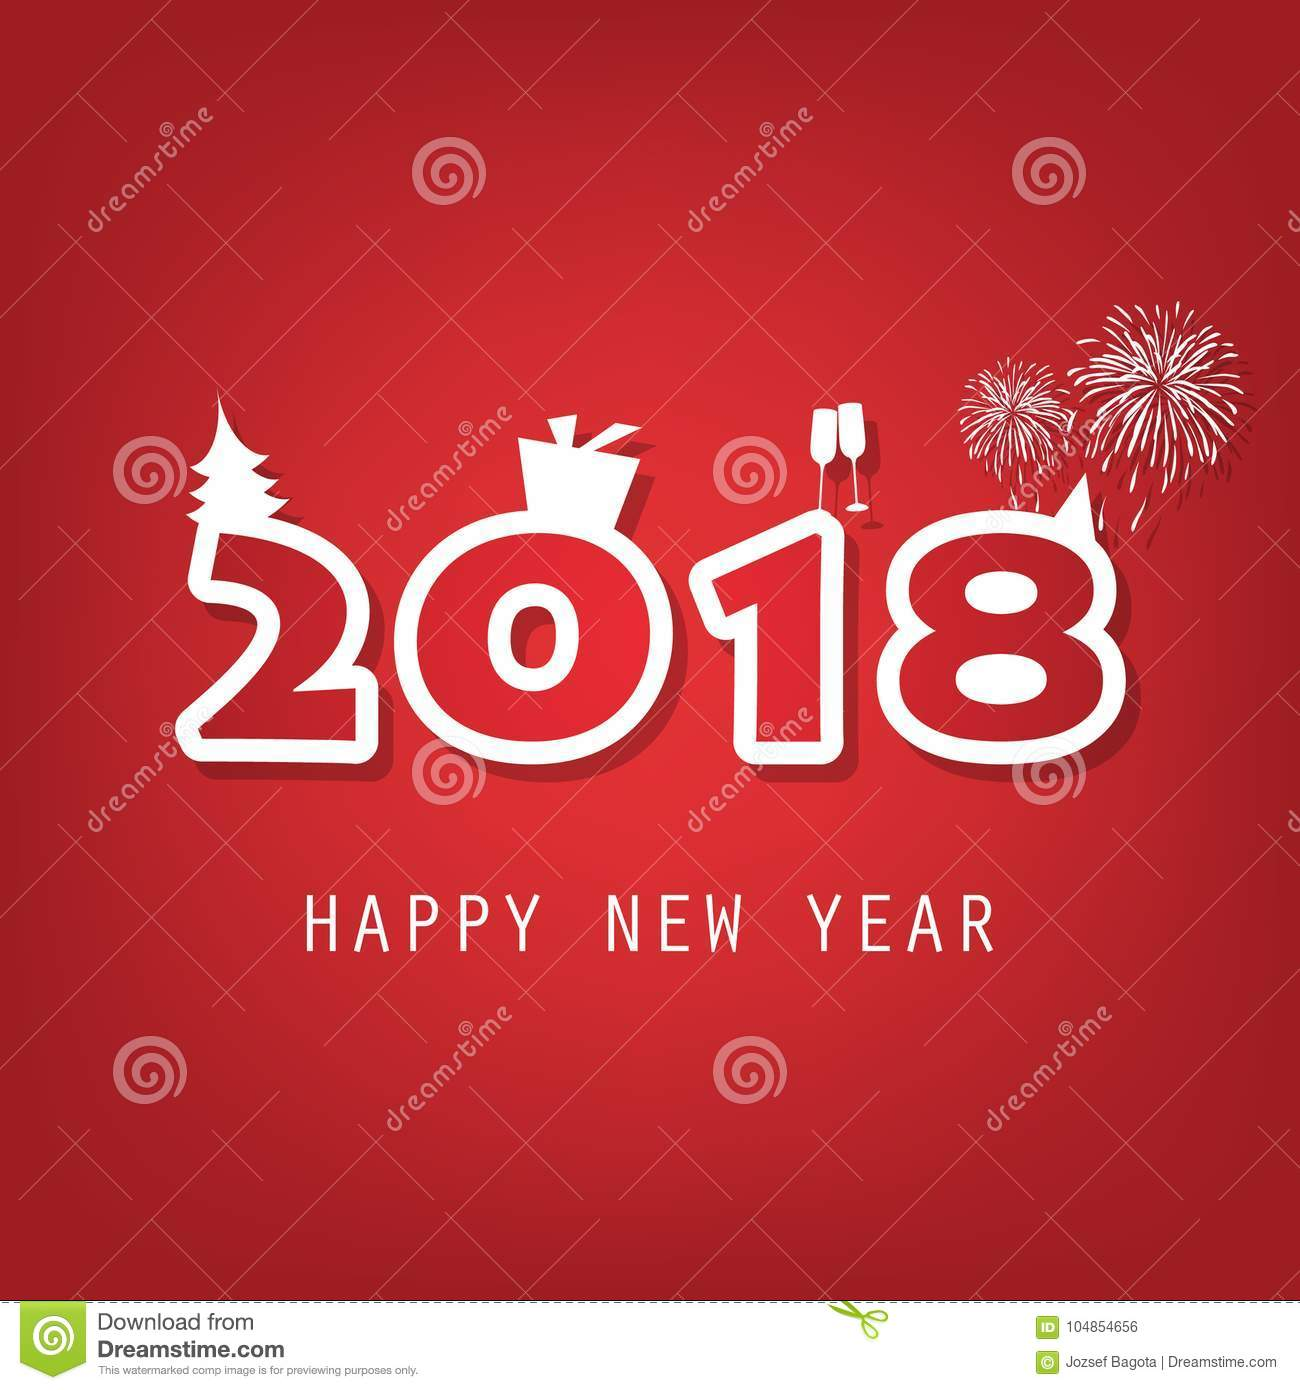 best wishes simple red and white new year card cover or background design template